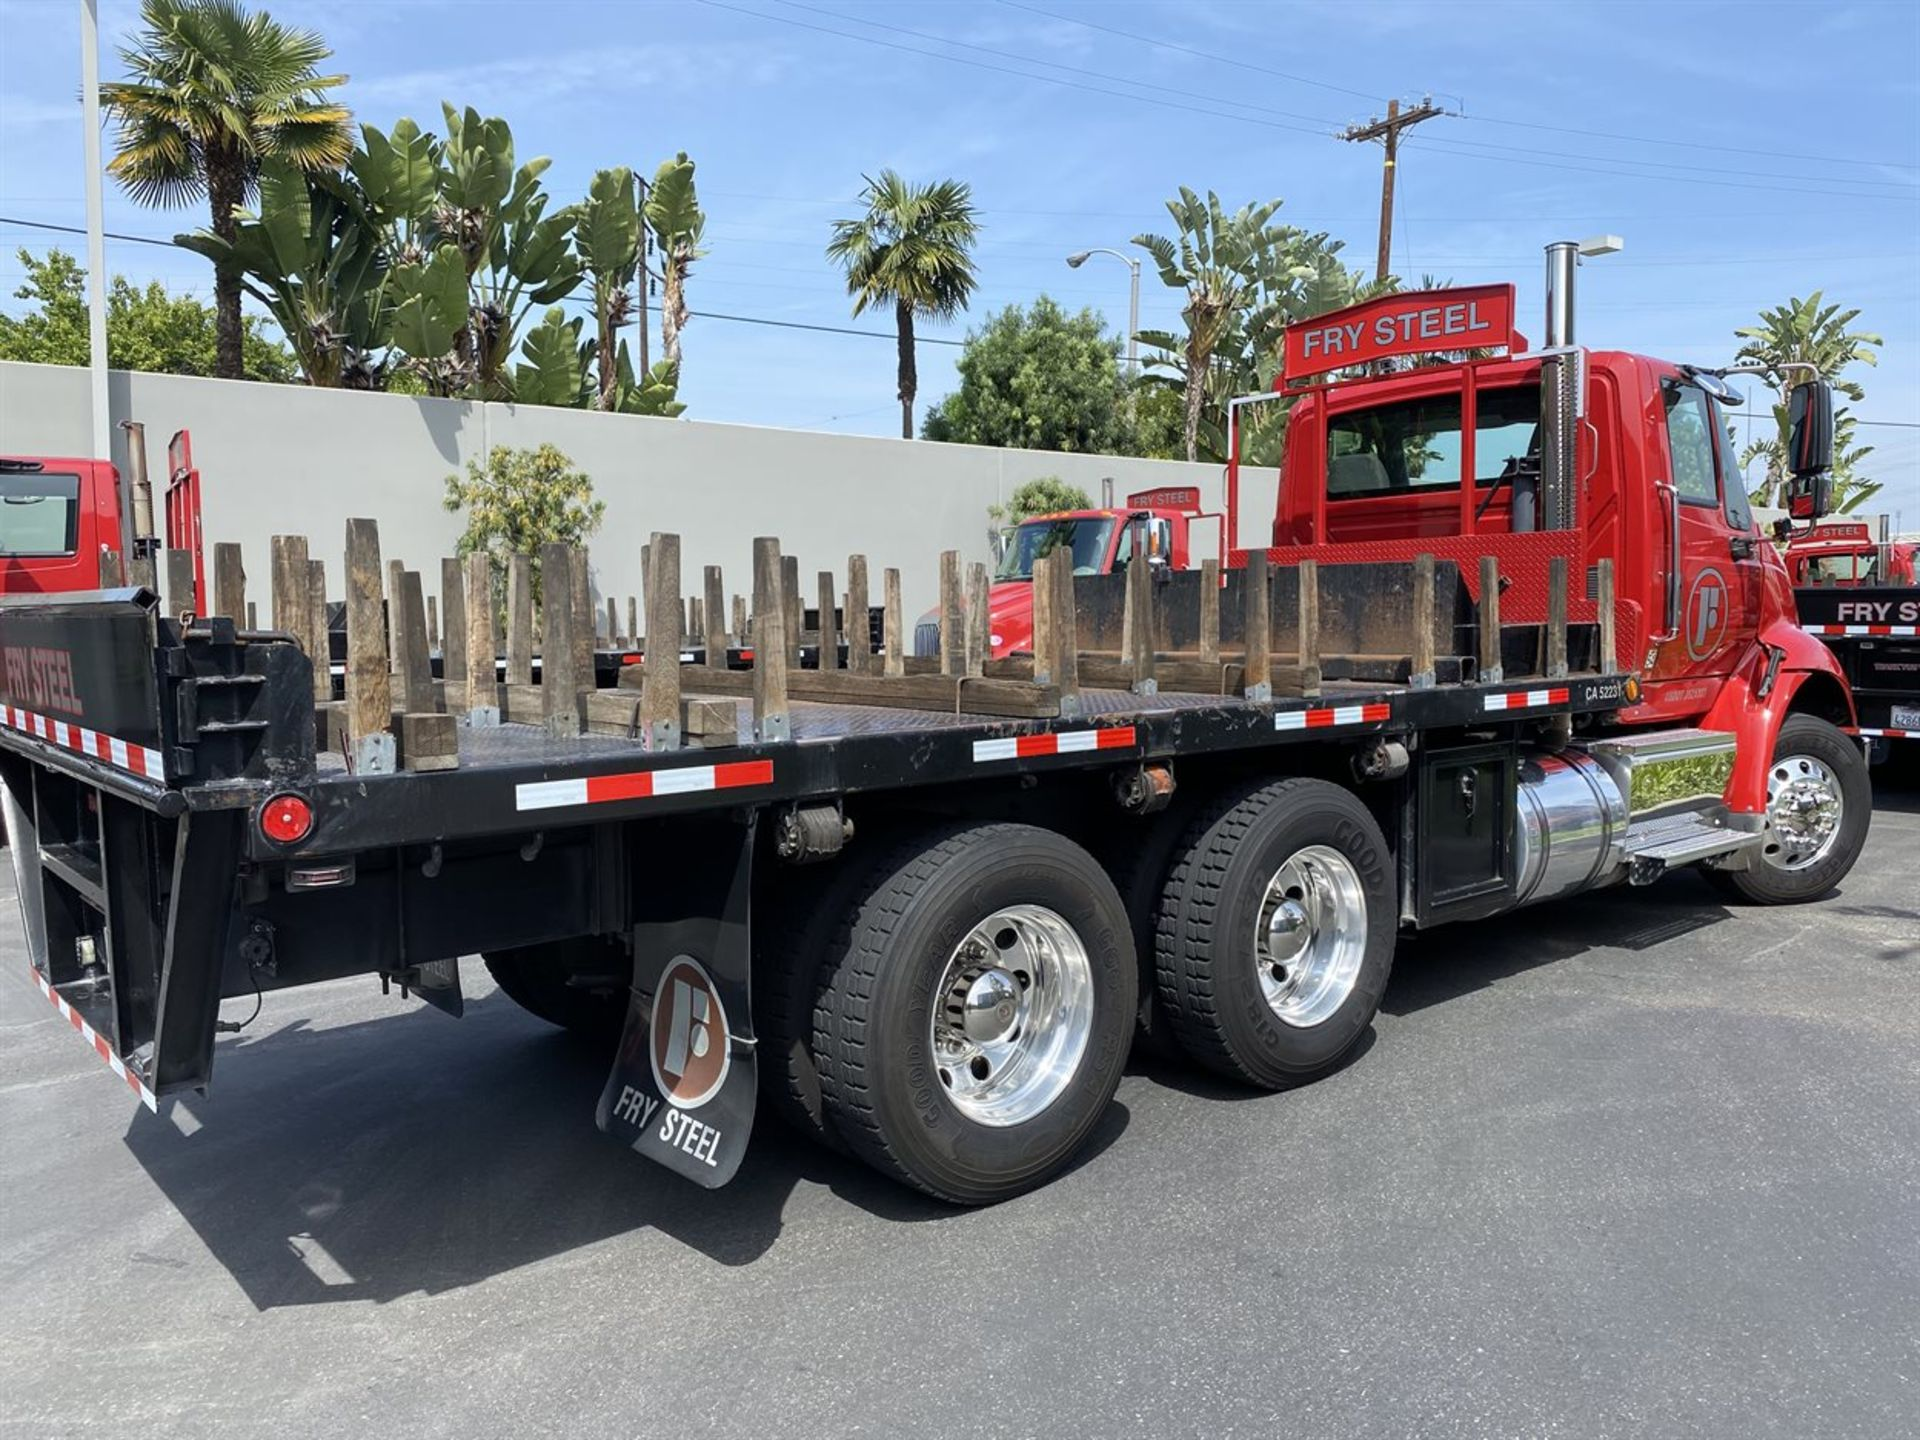 2016 INTERNATIONAL 18' Stake Bed Truck, VIN 3HTHXSNR2GN003228, 122,350 Miles at time of inspection - Image 6 of 21